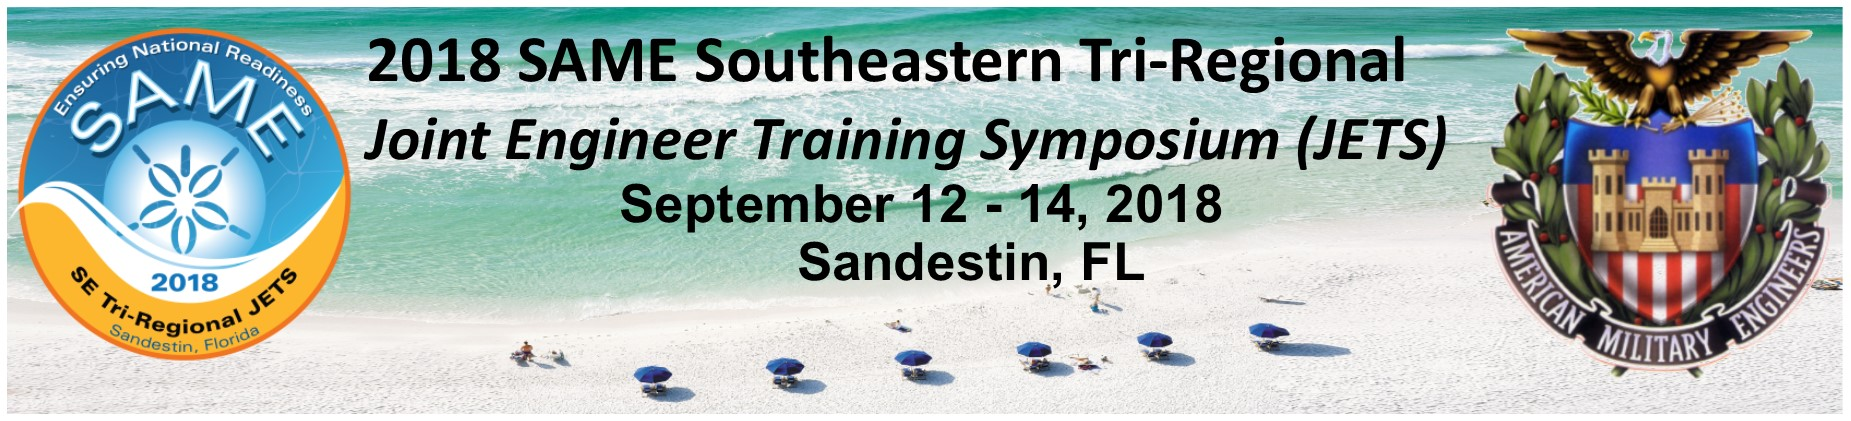 2018 SAME  Southeastern Tri-Regional Joint Engineer Training Symposium (JETS)